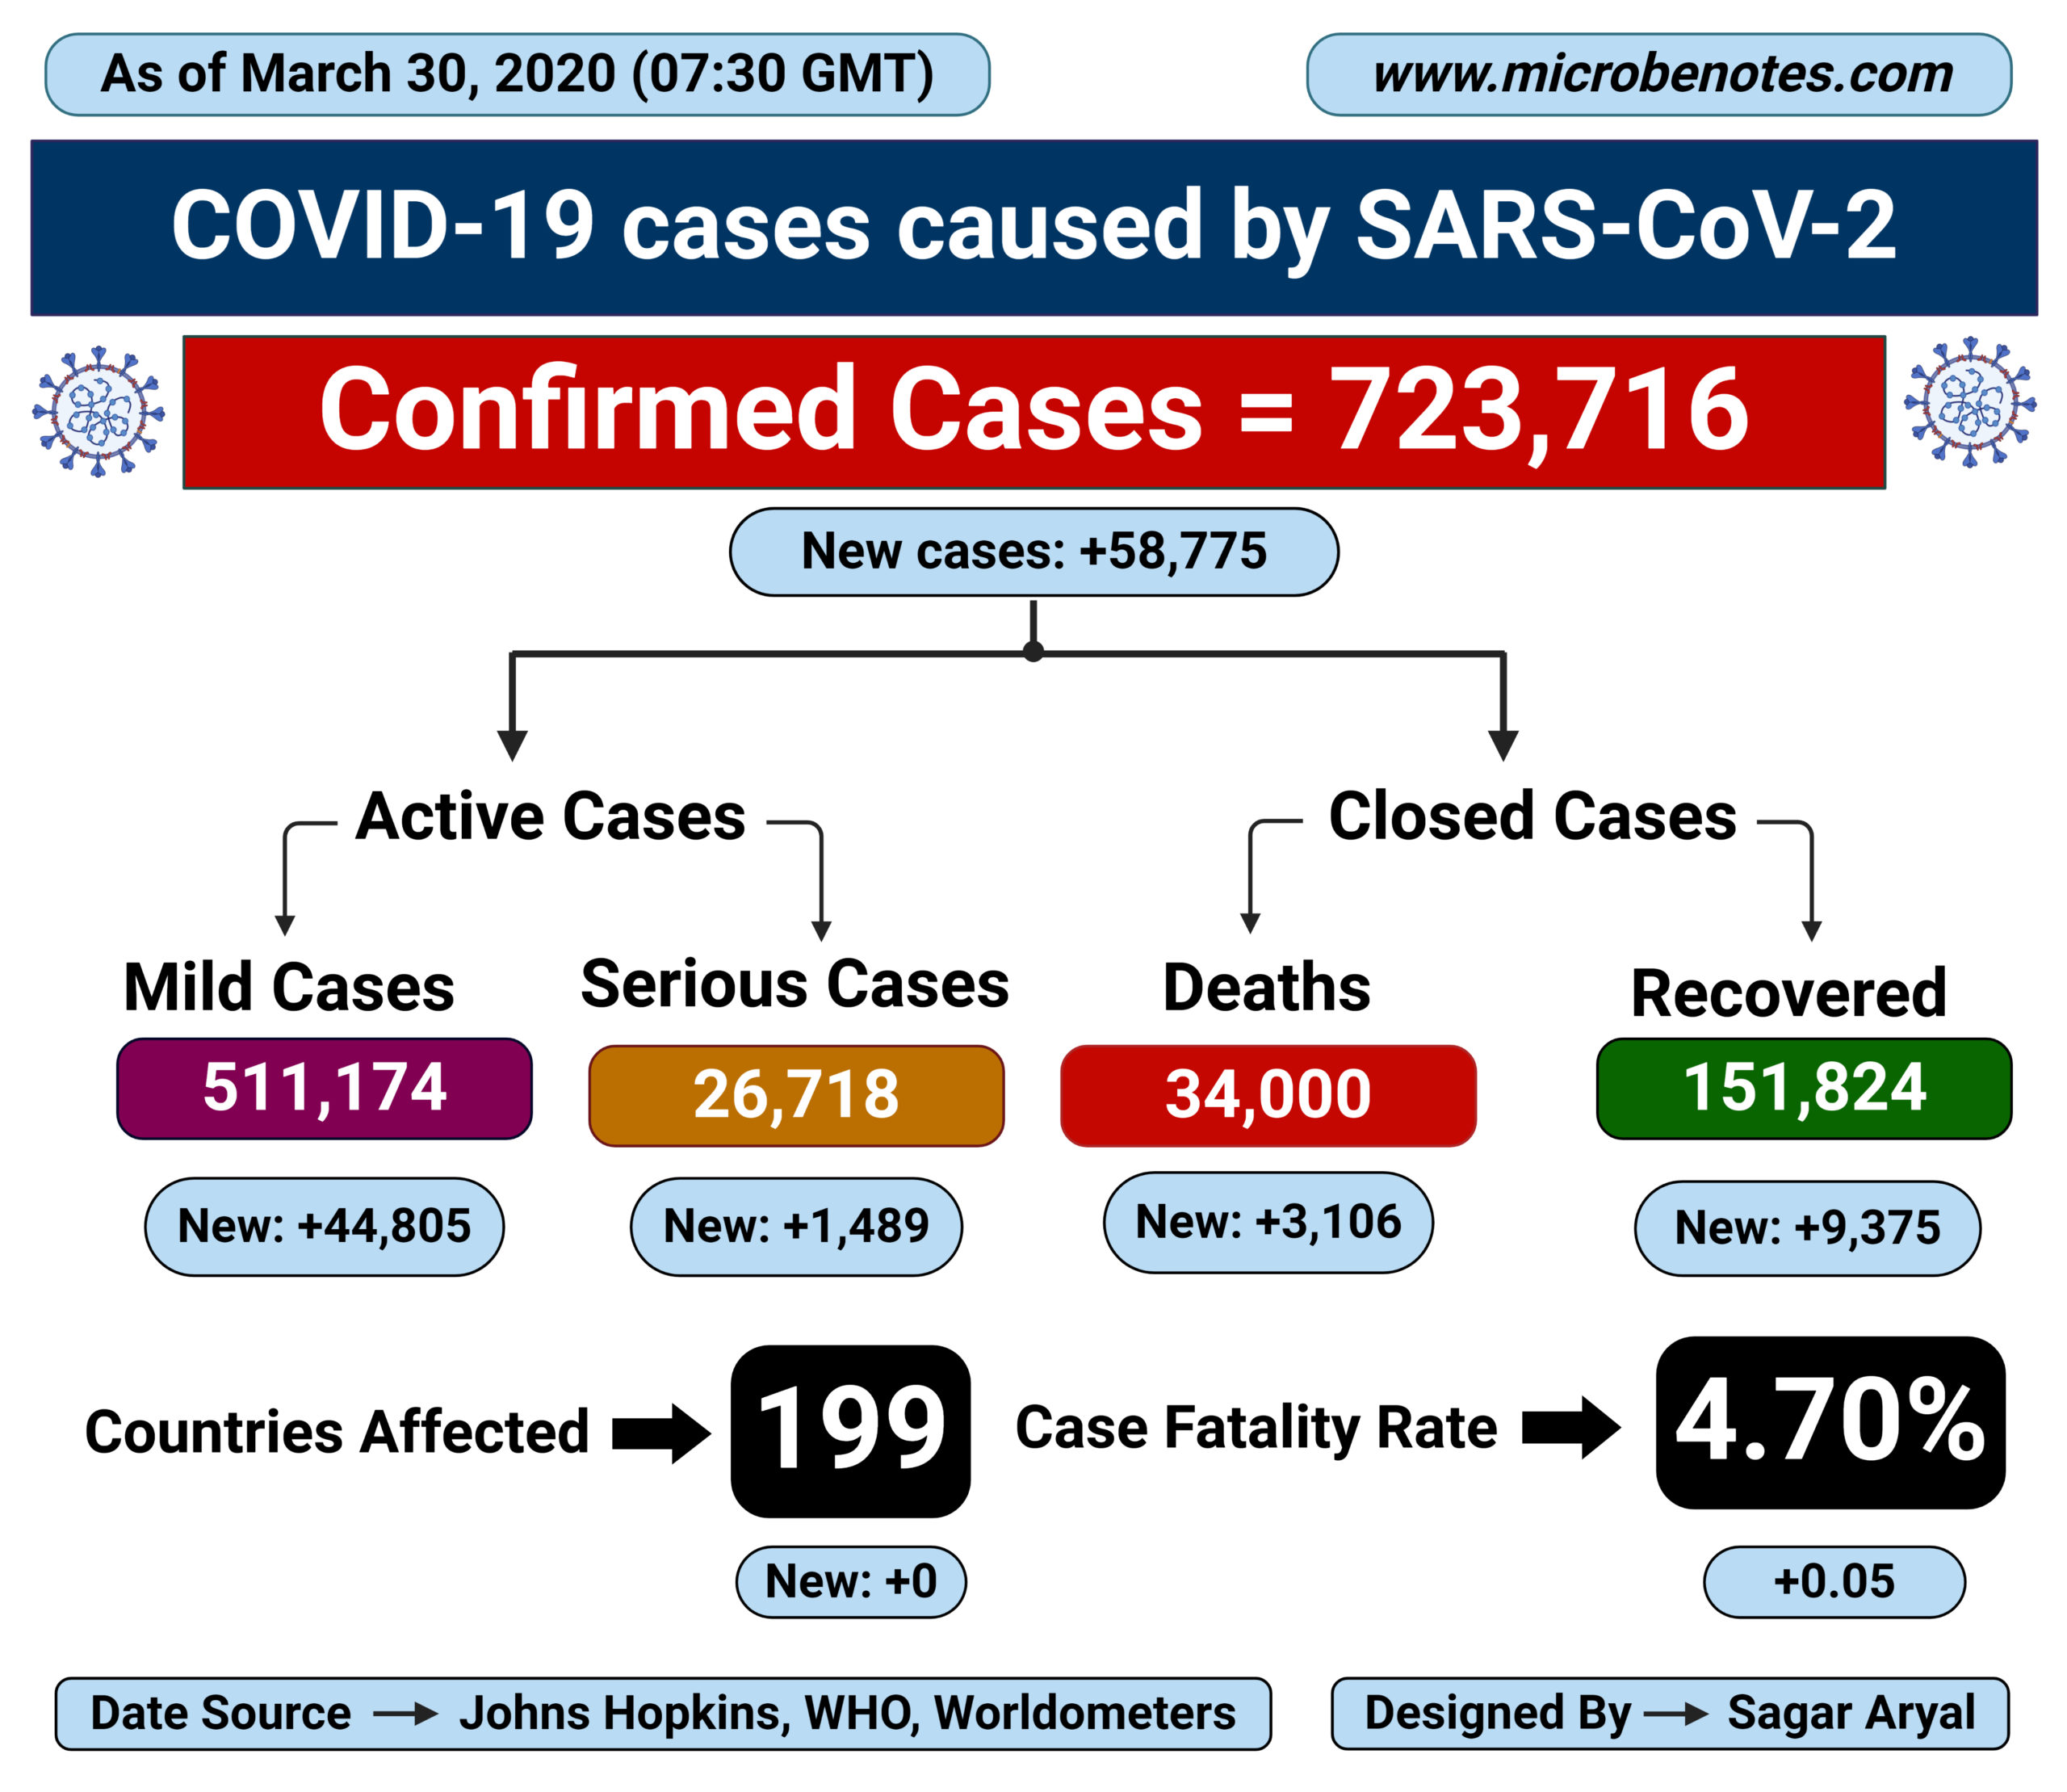 Epidemiology of COVID-19 caused by SARS-CoV-2 as of March 30, 2020